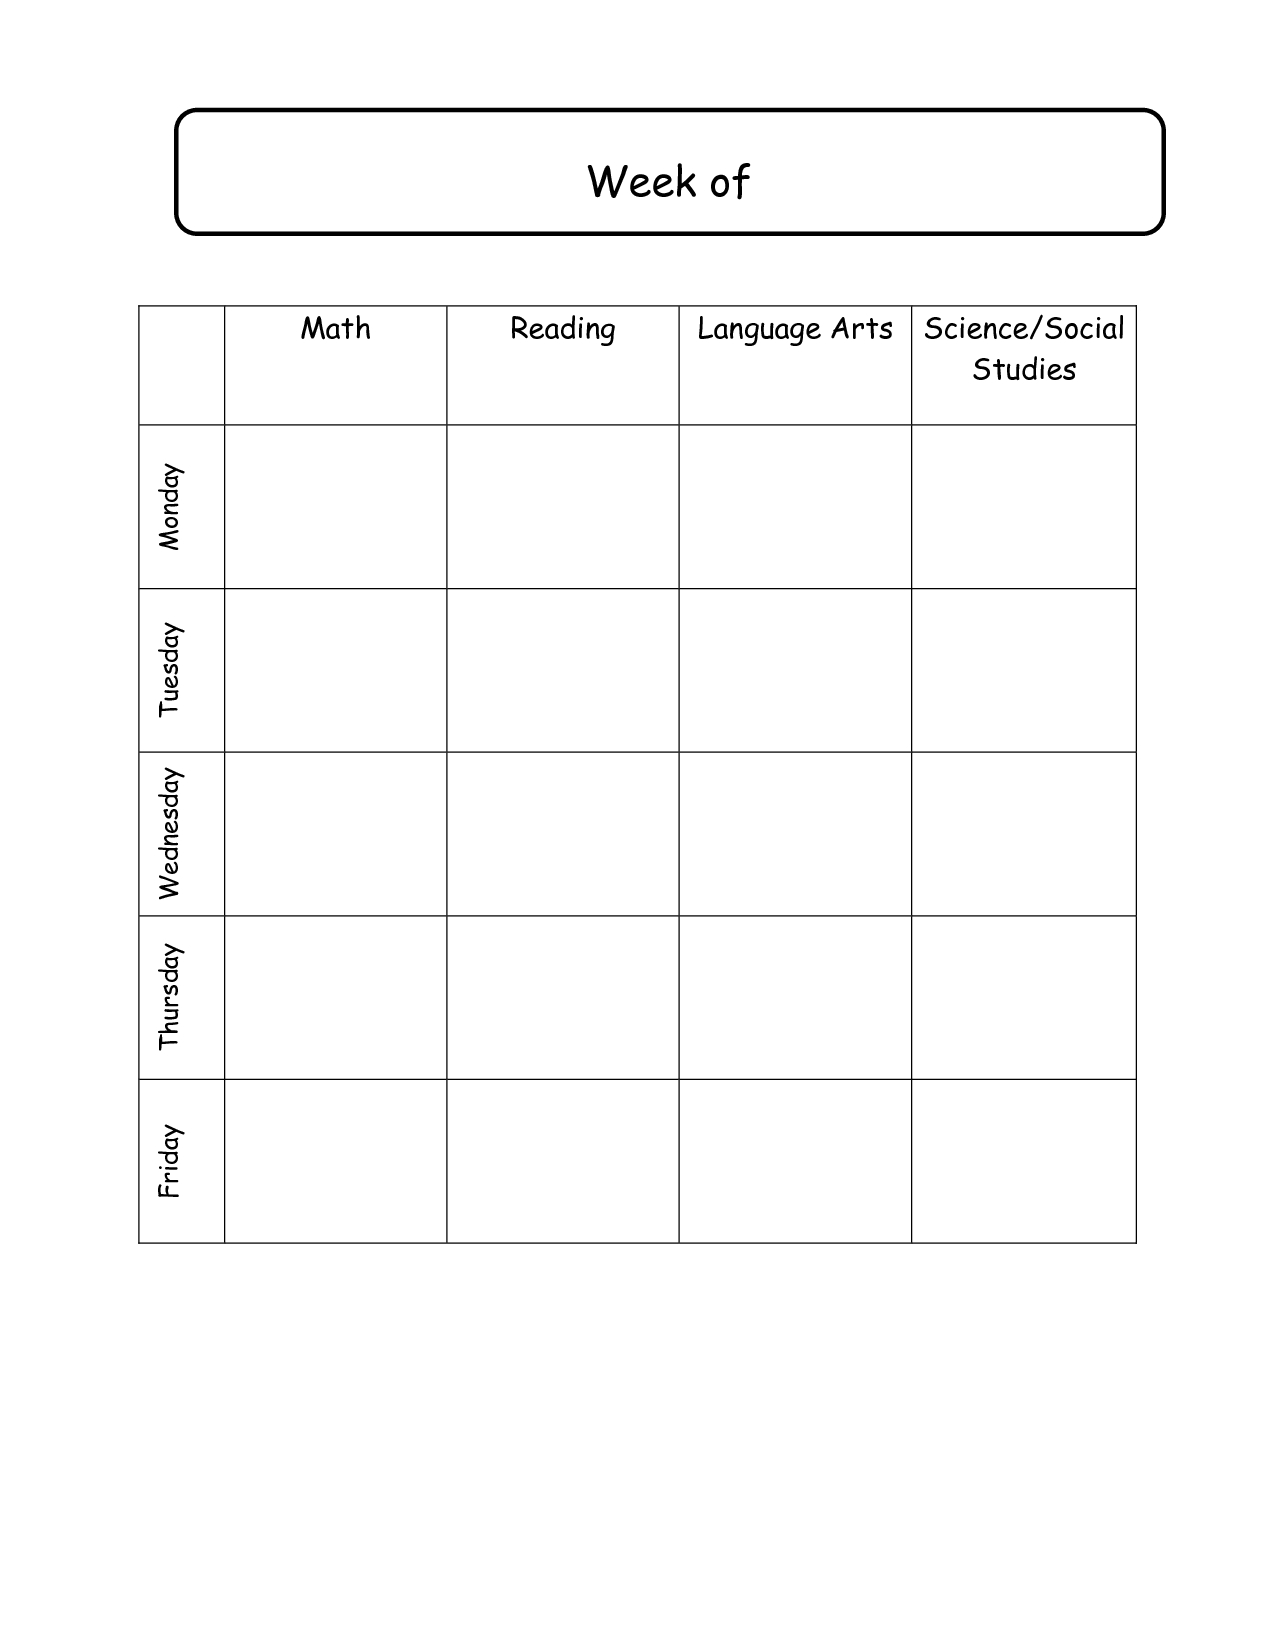 Elementary School Daily Schedule Template | Weekly Lesson